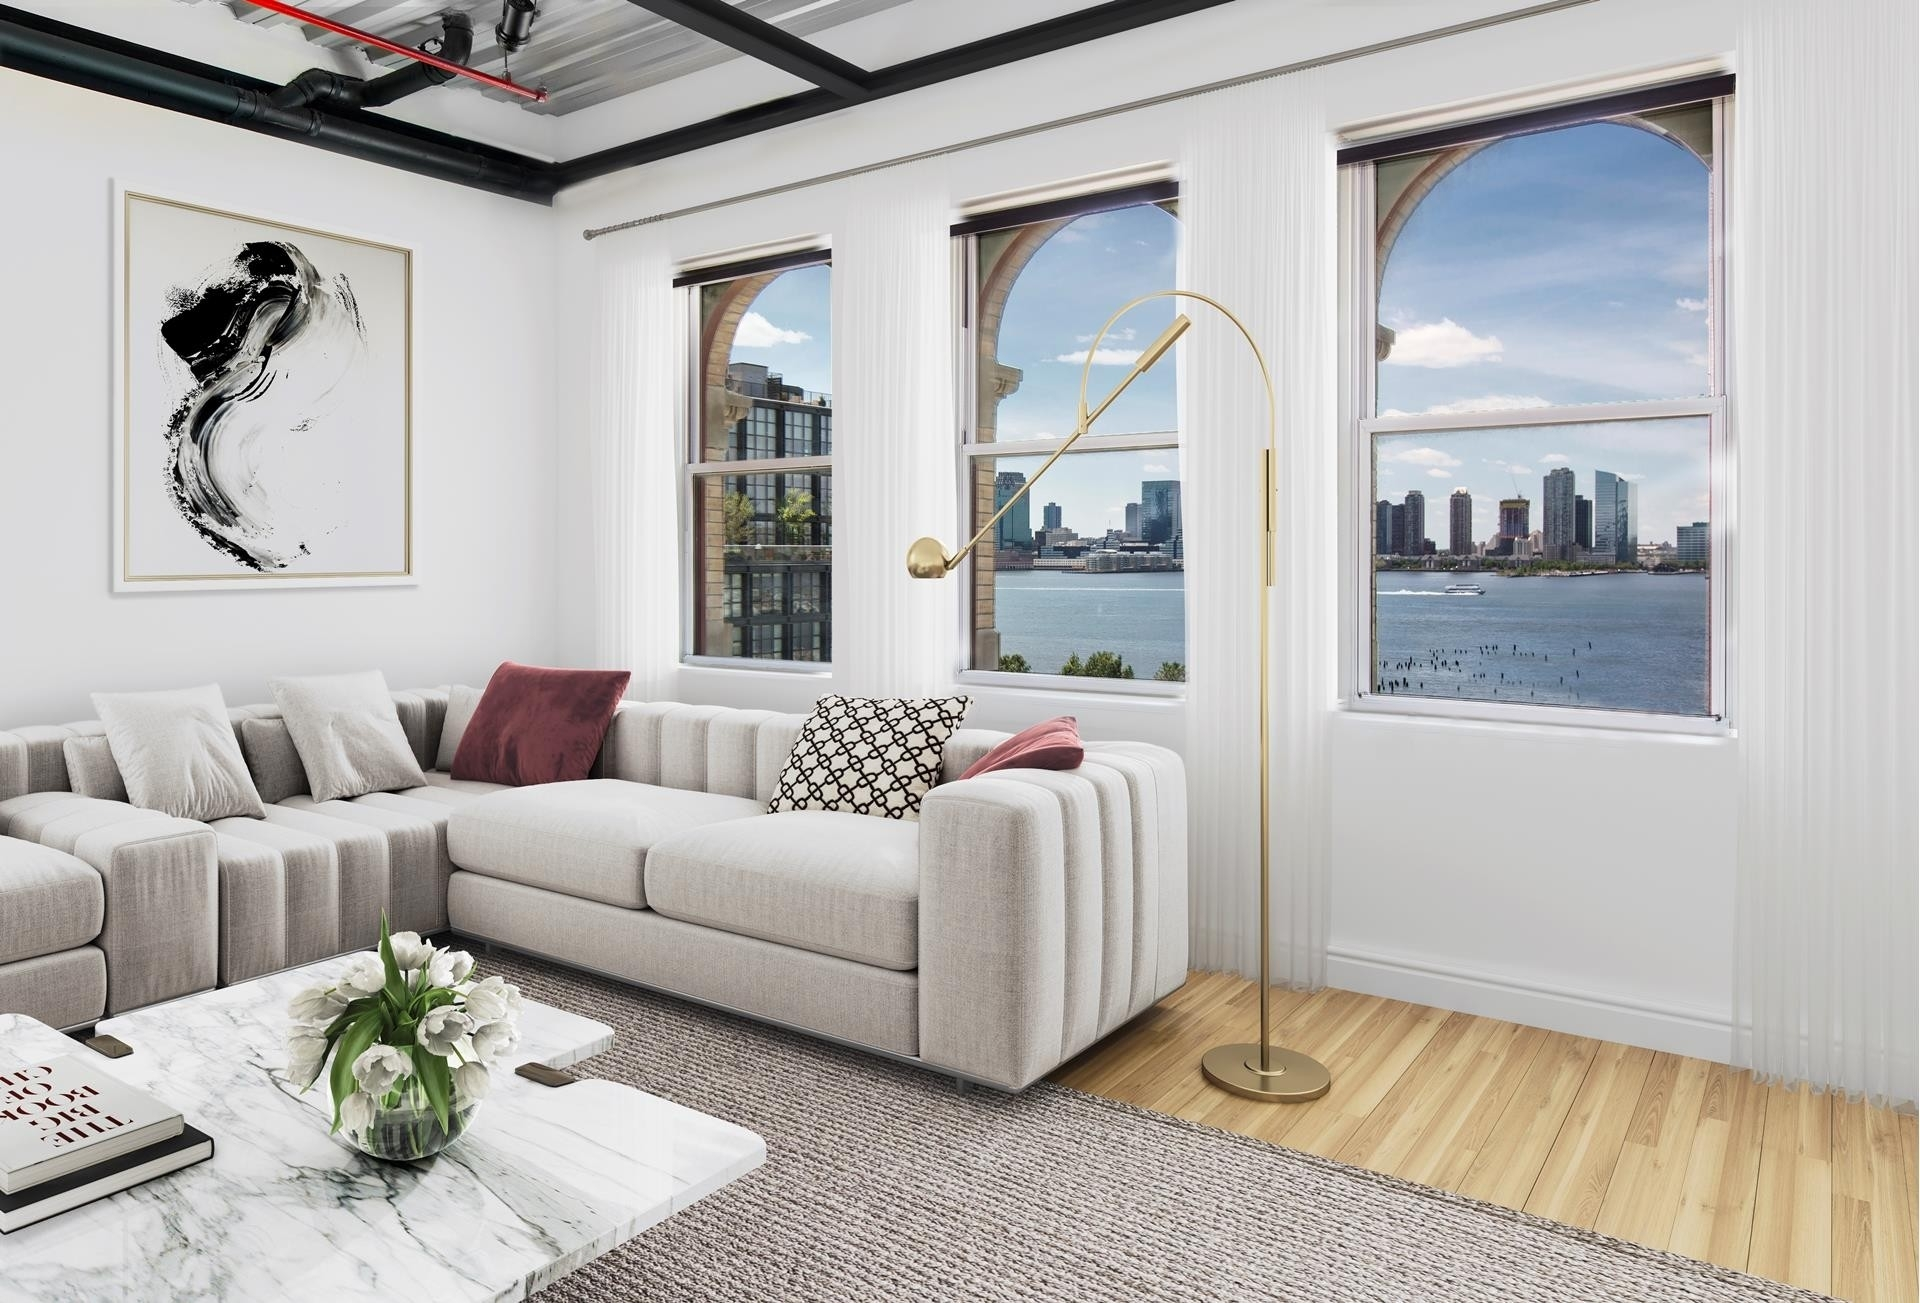 6. Condominiums for Sale at Spice Warehouse, 481 WASHINGTON ST , PHBC Hudson Square, New York, NY 10013